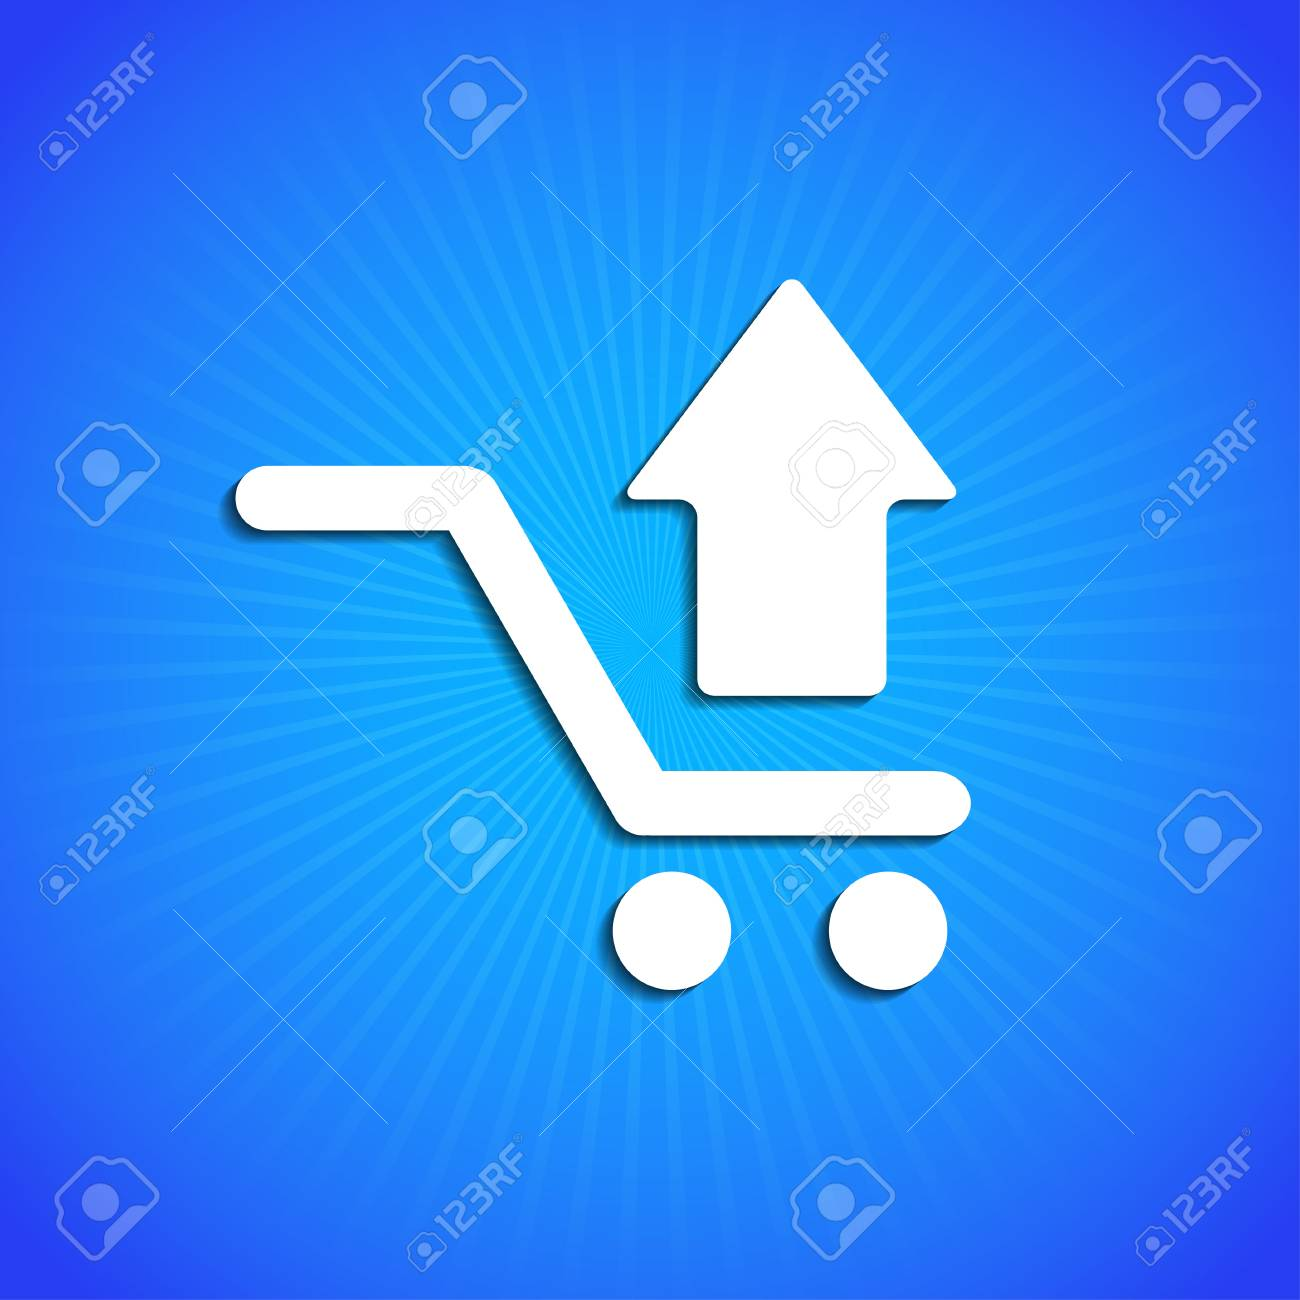 Vector icon on blue background. Eps10 Stock Vector - 17682310